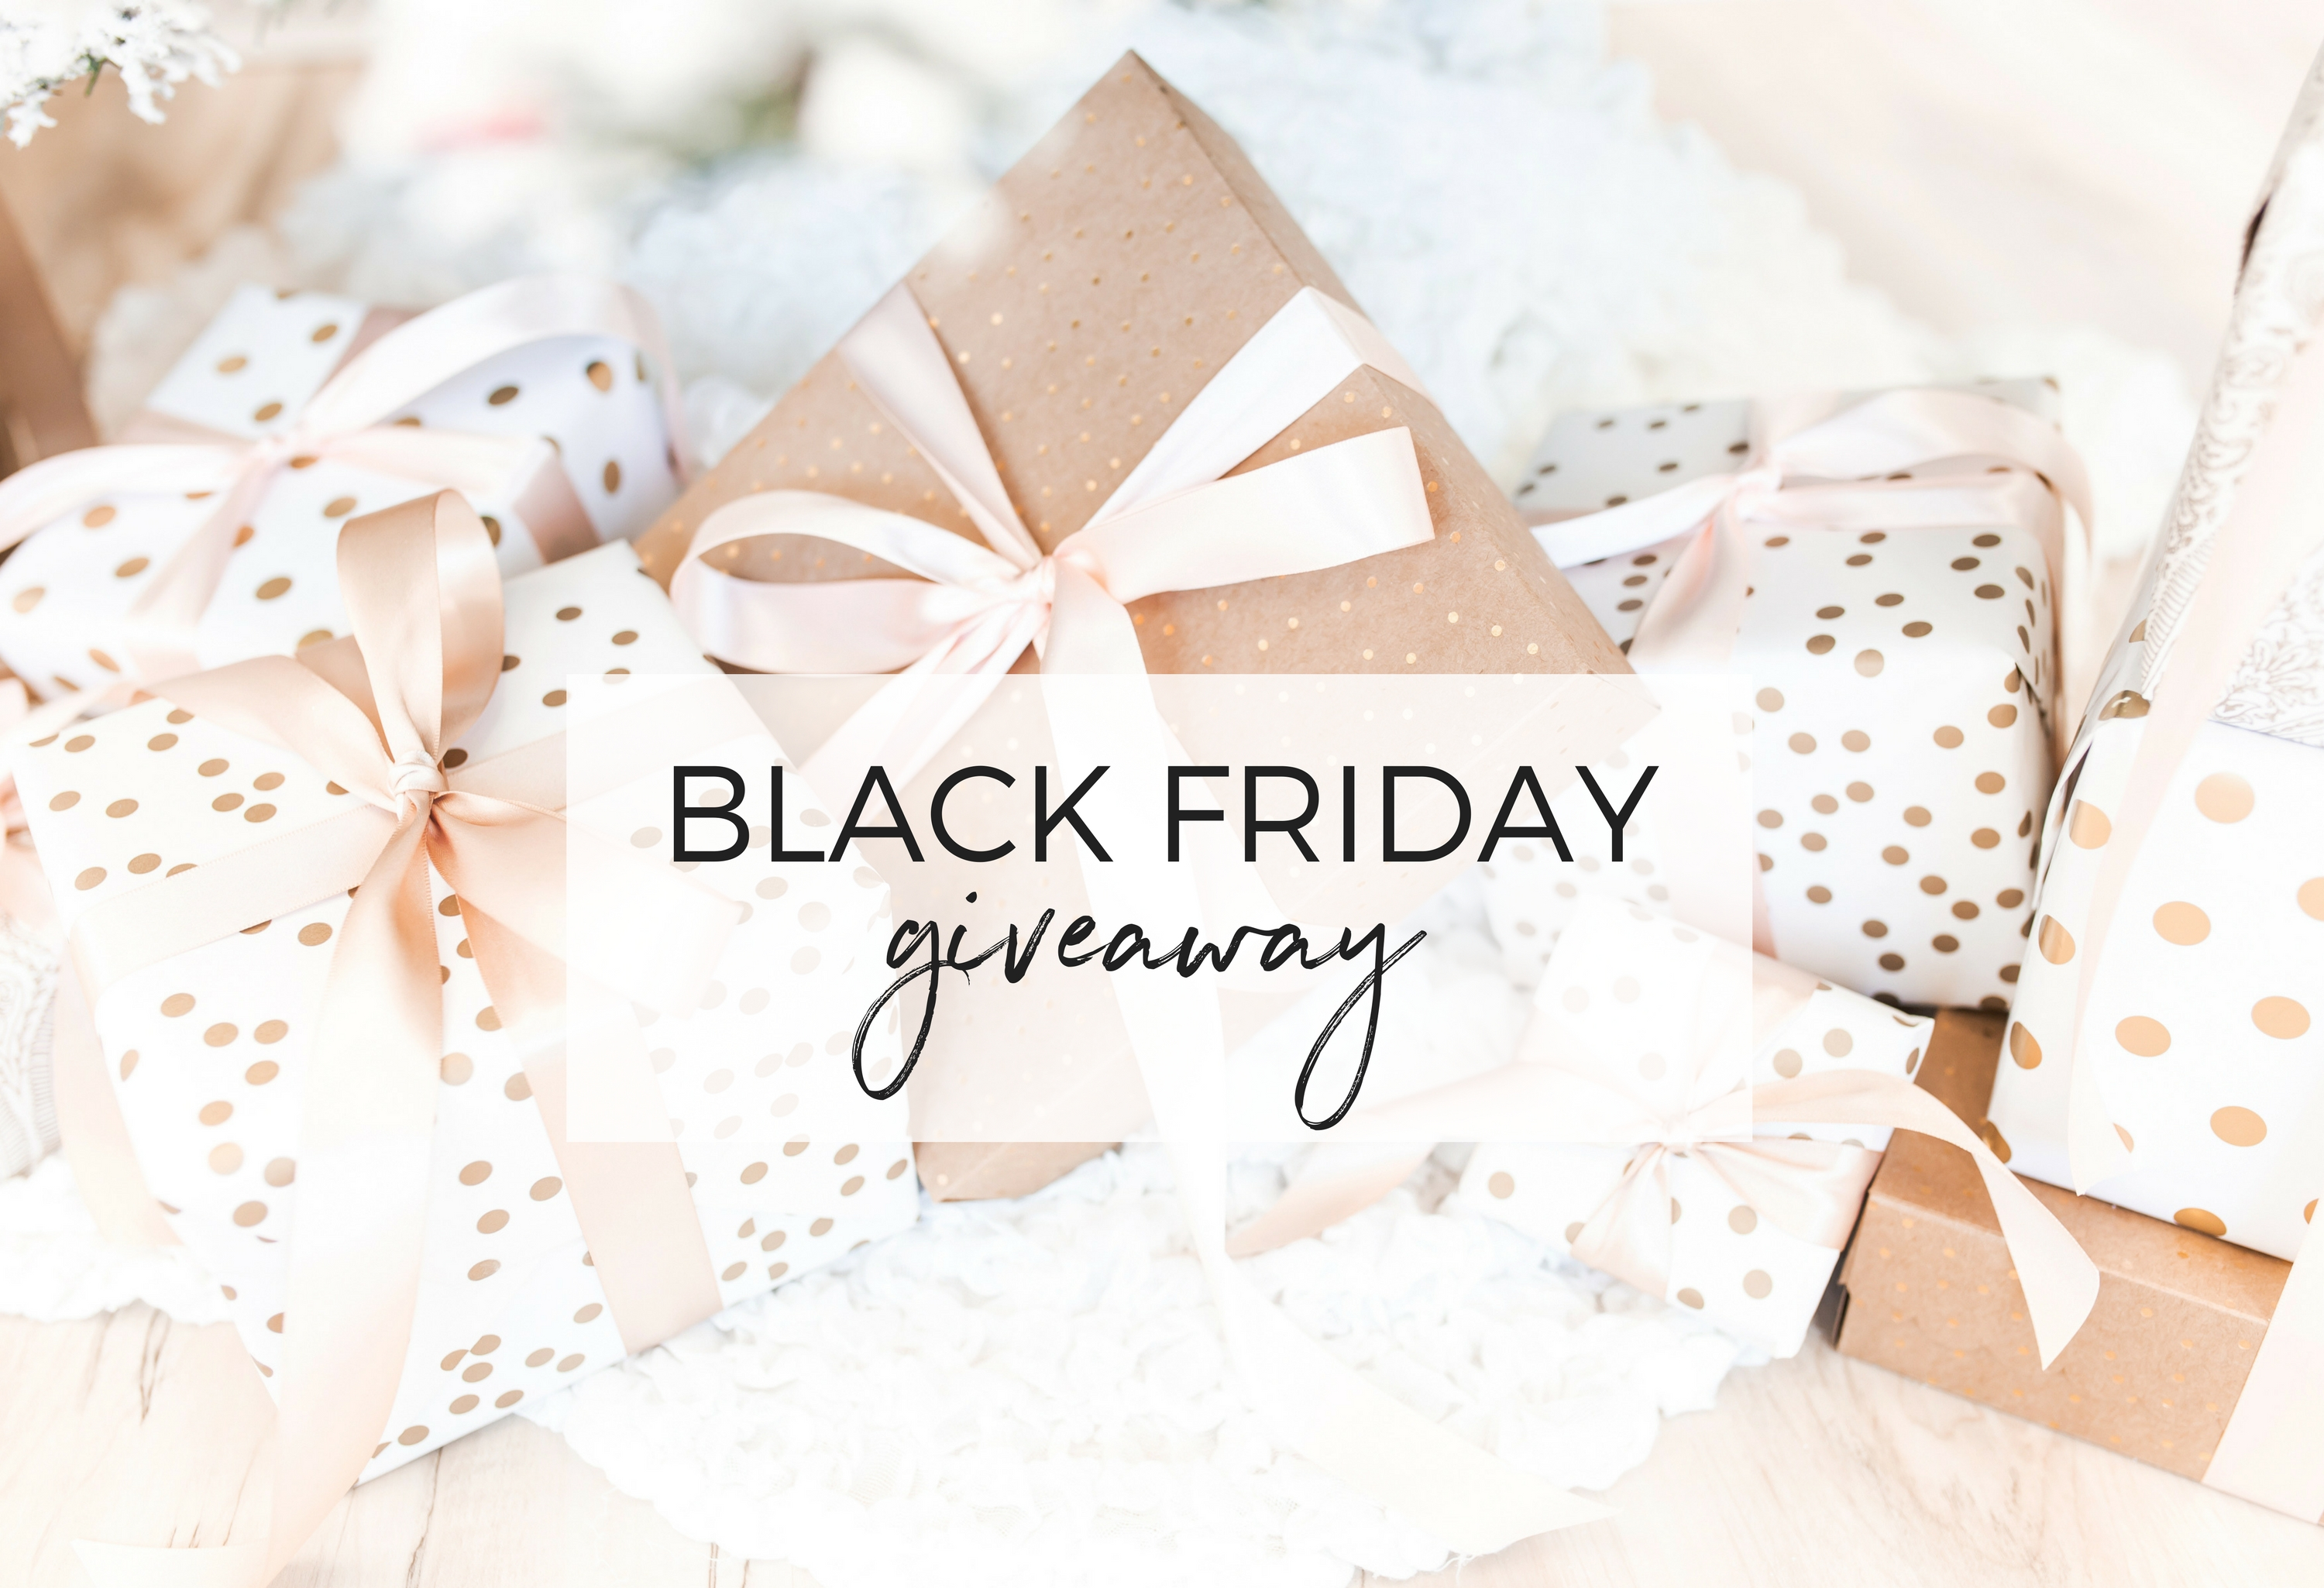 Black Friday Giveaway paypal cash